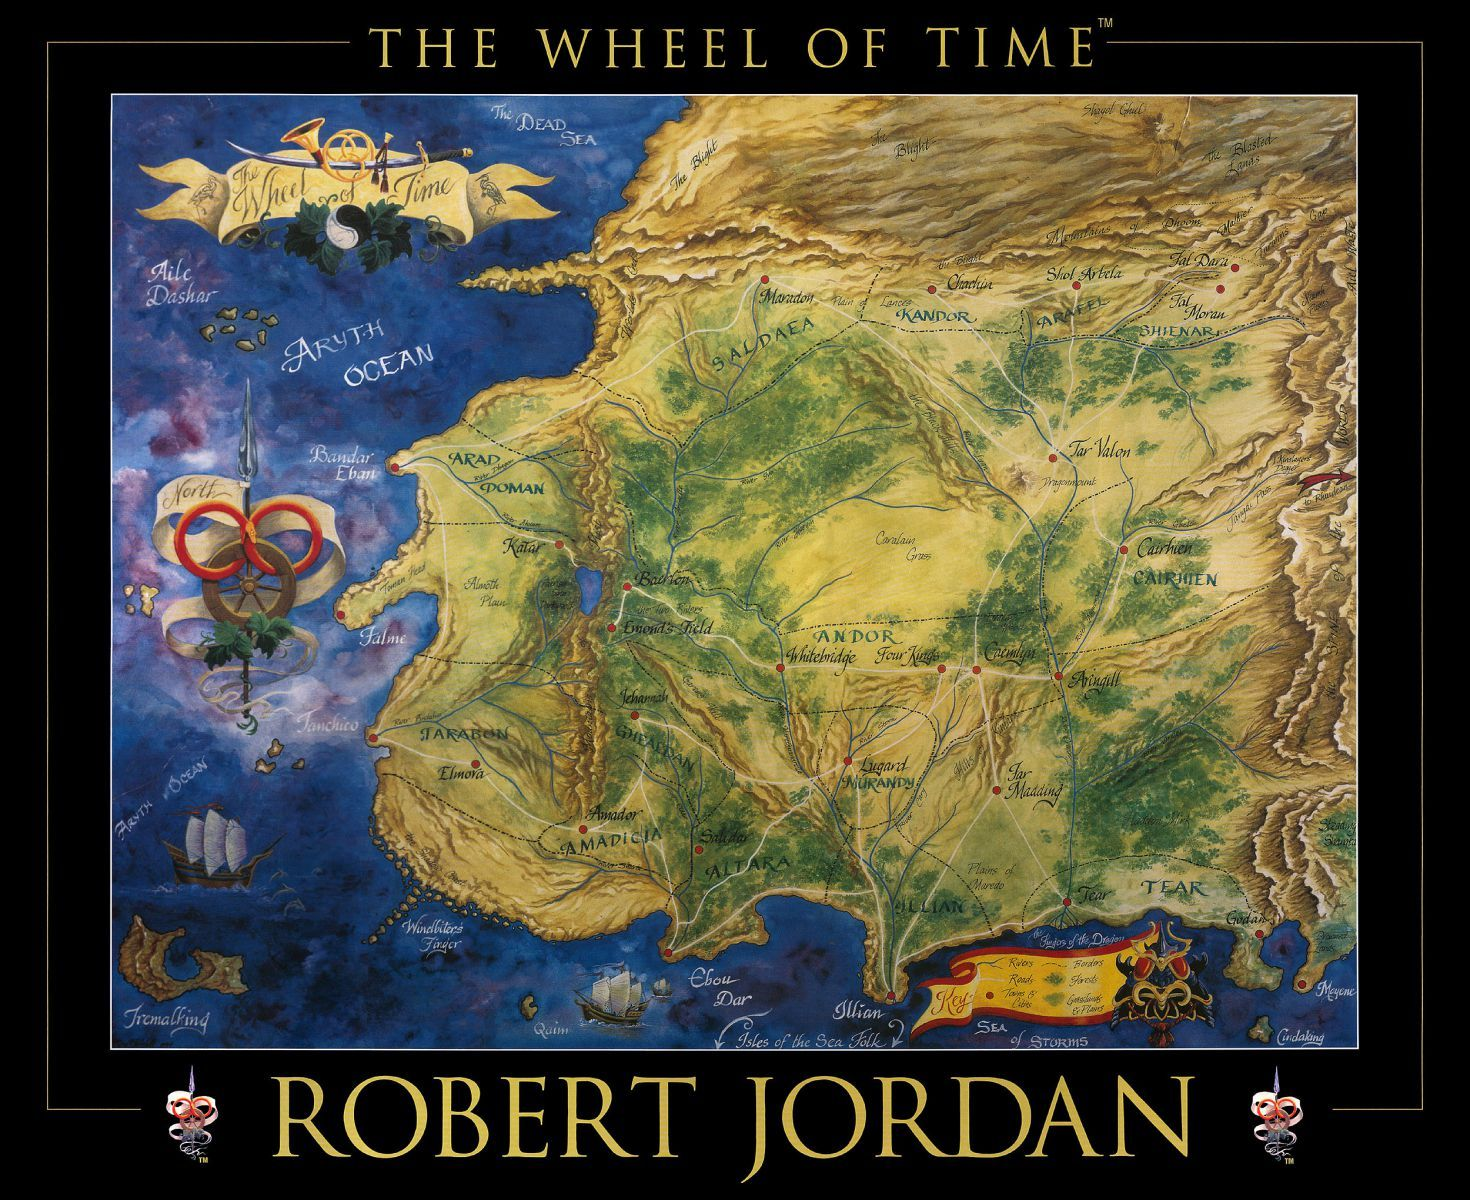 Robert jordan wheel of time map 1 fantasy maps pinterest robert jordan wheel of time map 1 gumiabroncs Choice Image